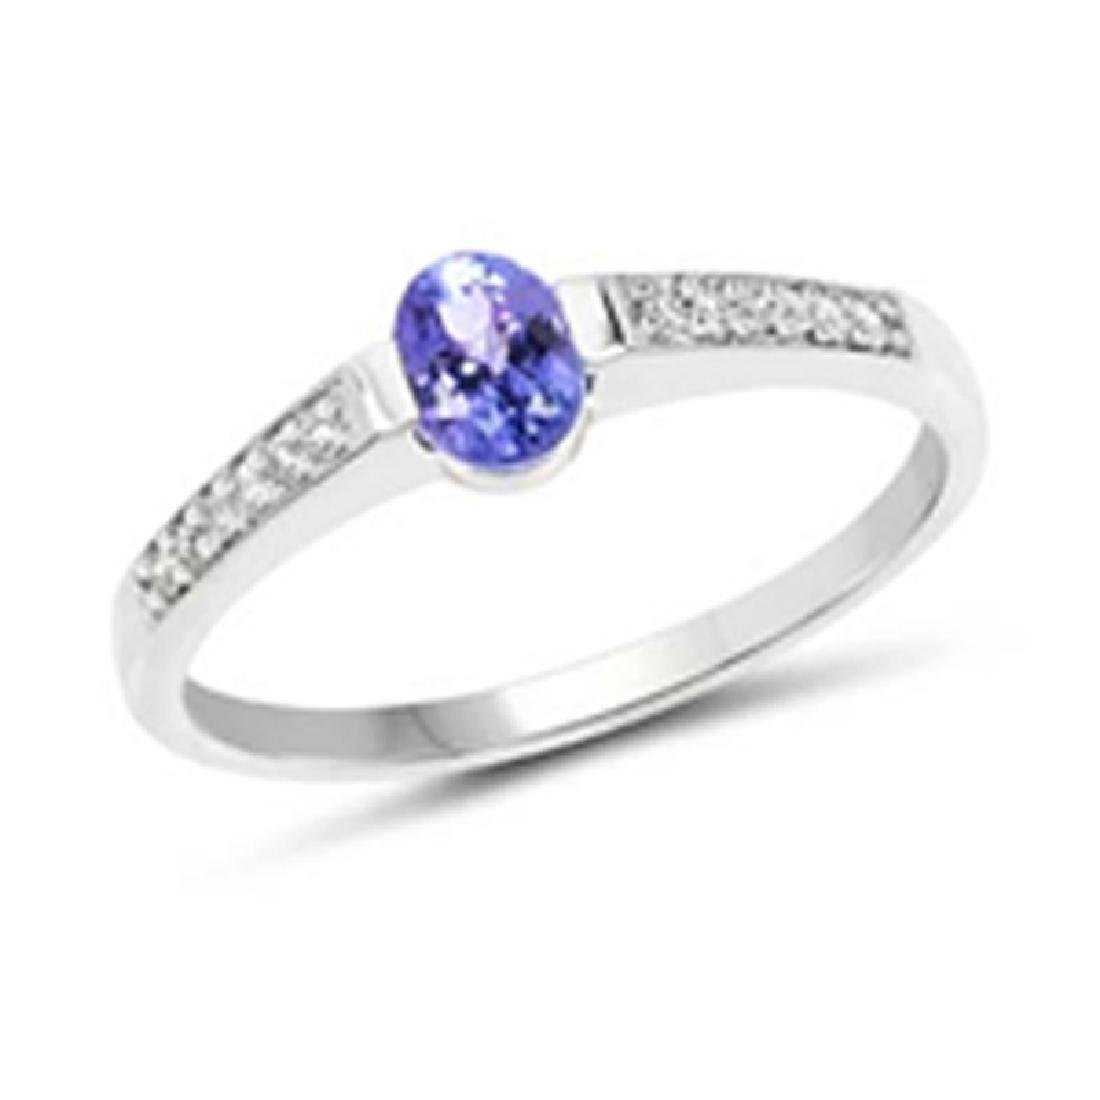 *Fine Jewelry 14K White Gold, 2.08CT Tanzanite And